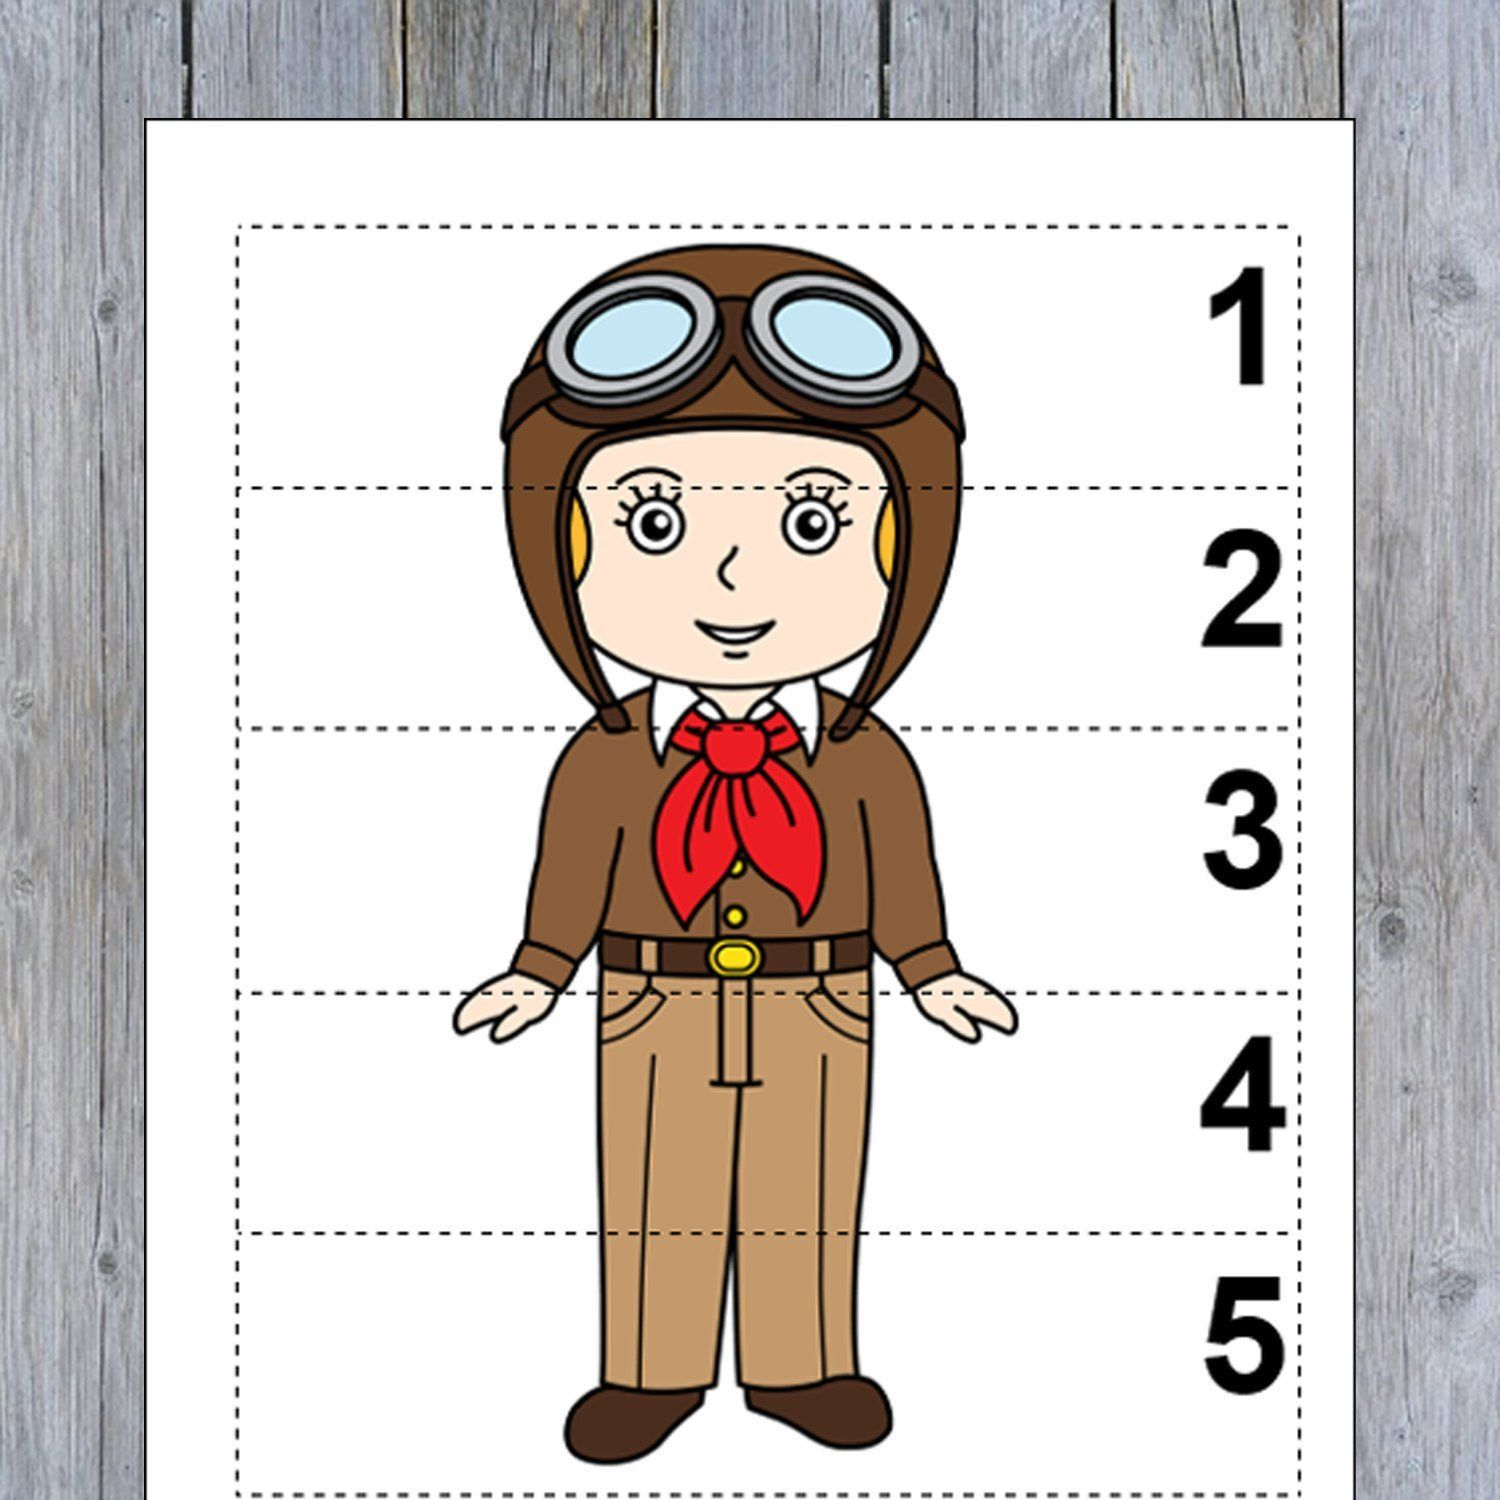 10 Famous Women In History Number Sequence 1 5 Preschool